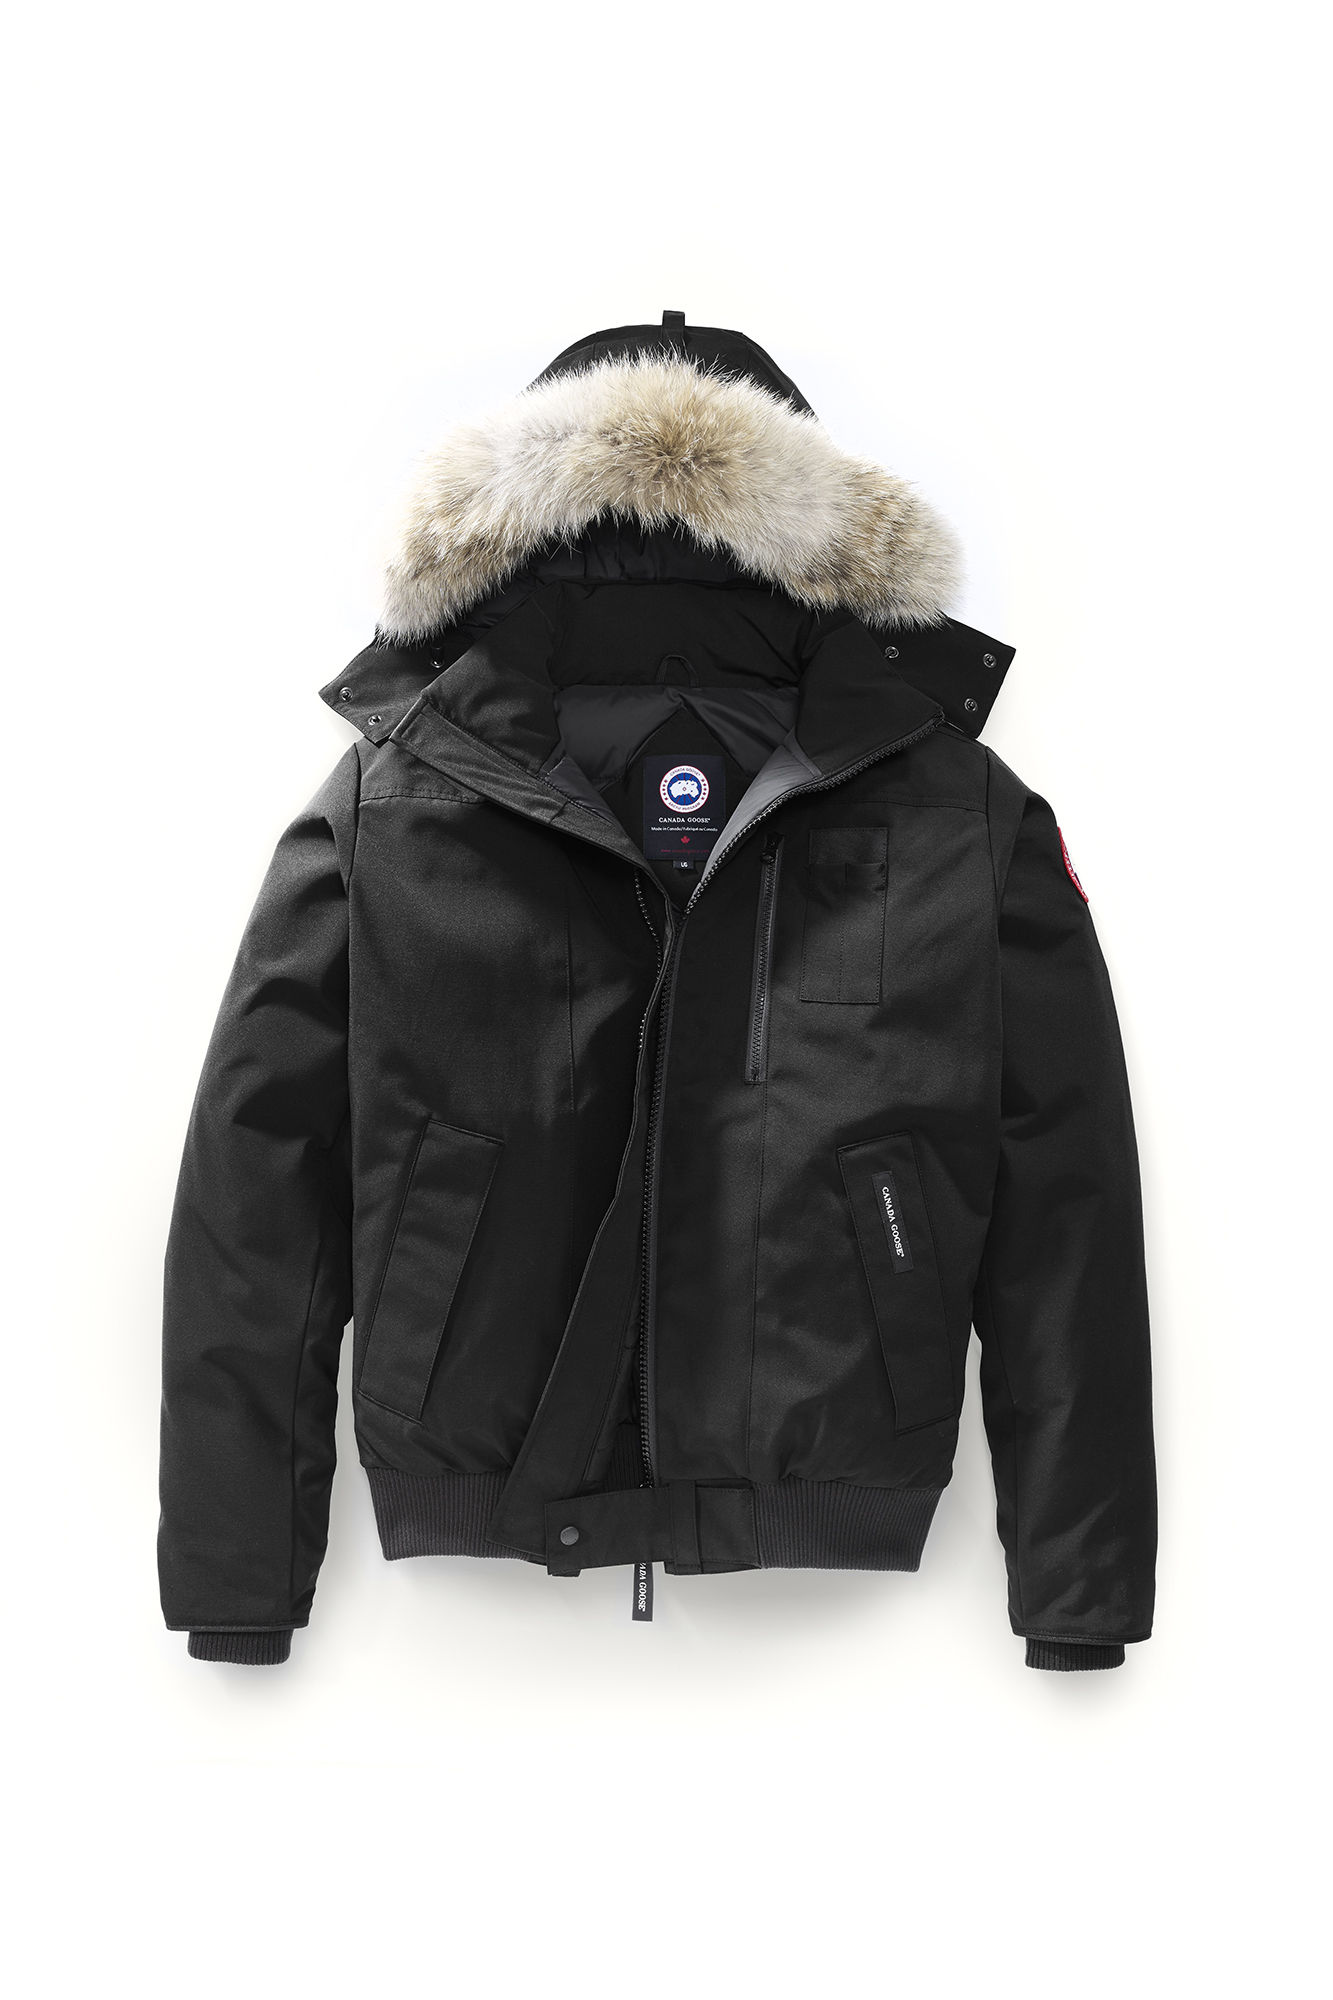 Authentic Canada Goose Yorkville Bomber Homme Brown,the